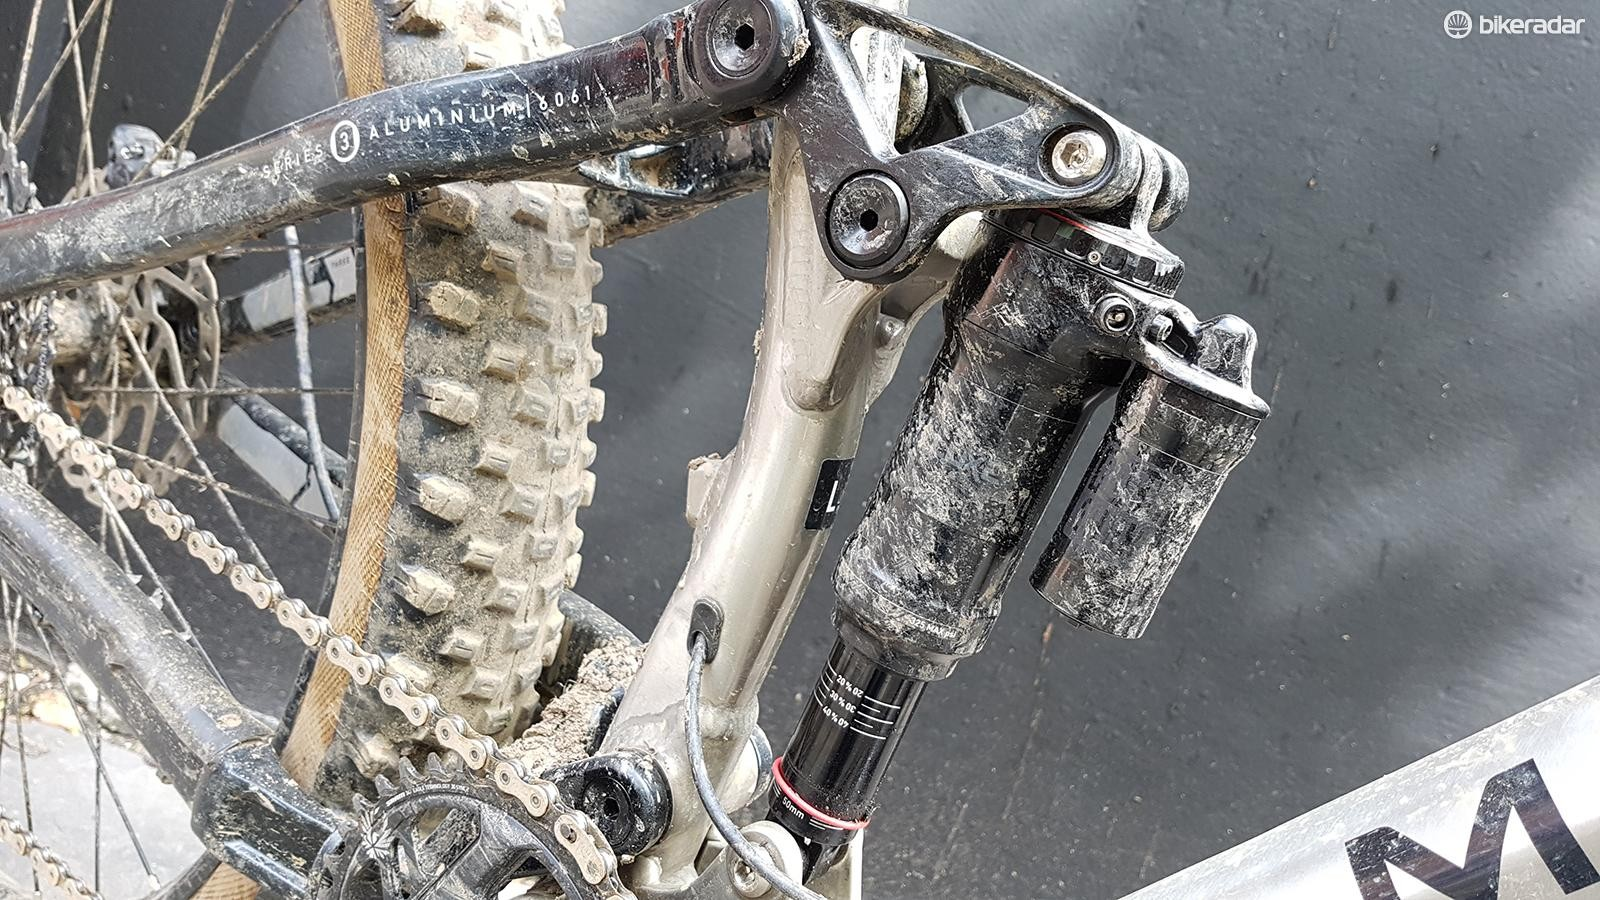 The RockShox Super Deluxe RC3 is a quality damper